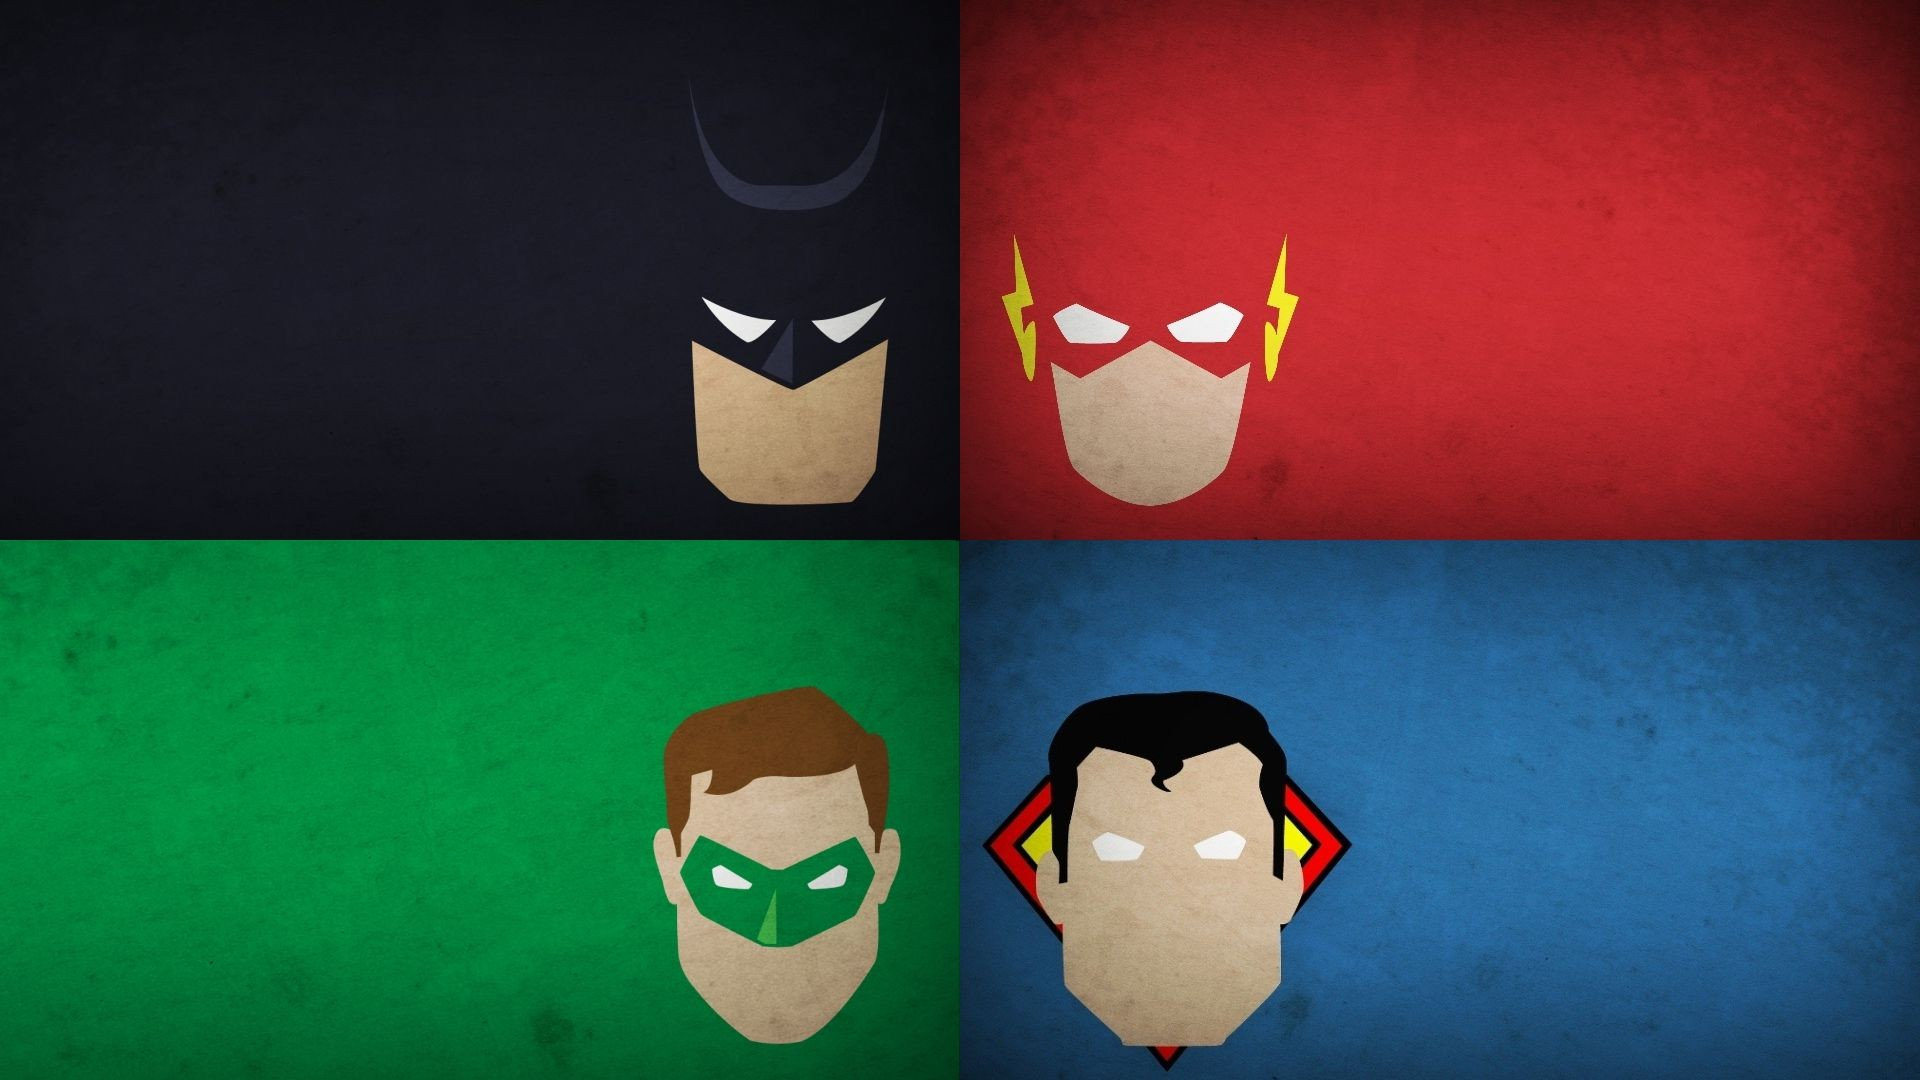 Justice League App Banners Android Homescreen by Isaiaher 1920x1080